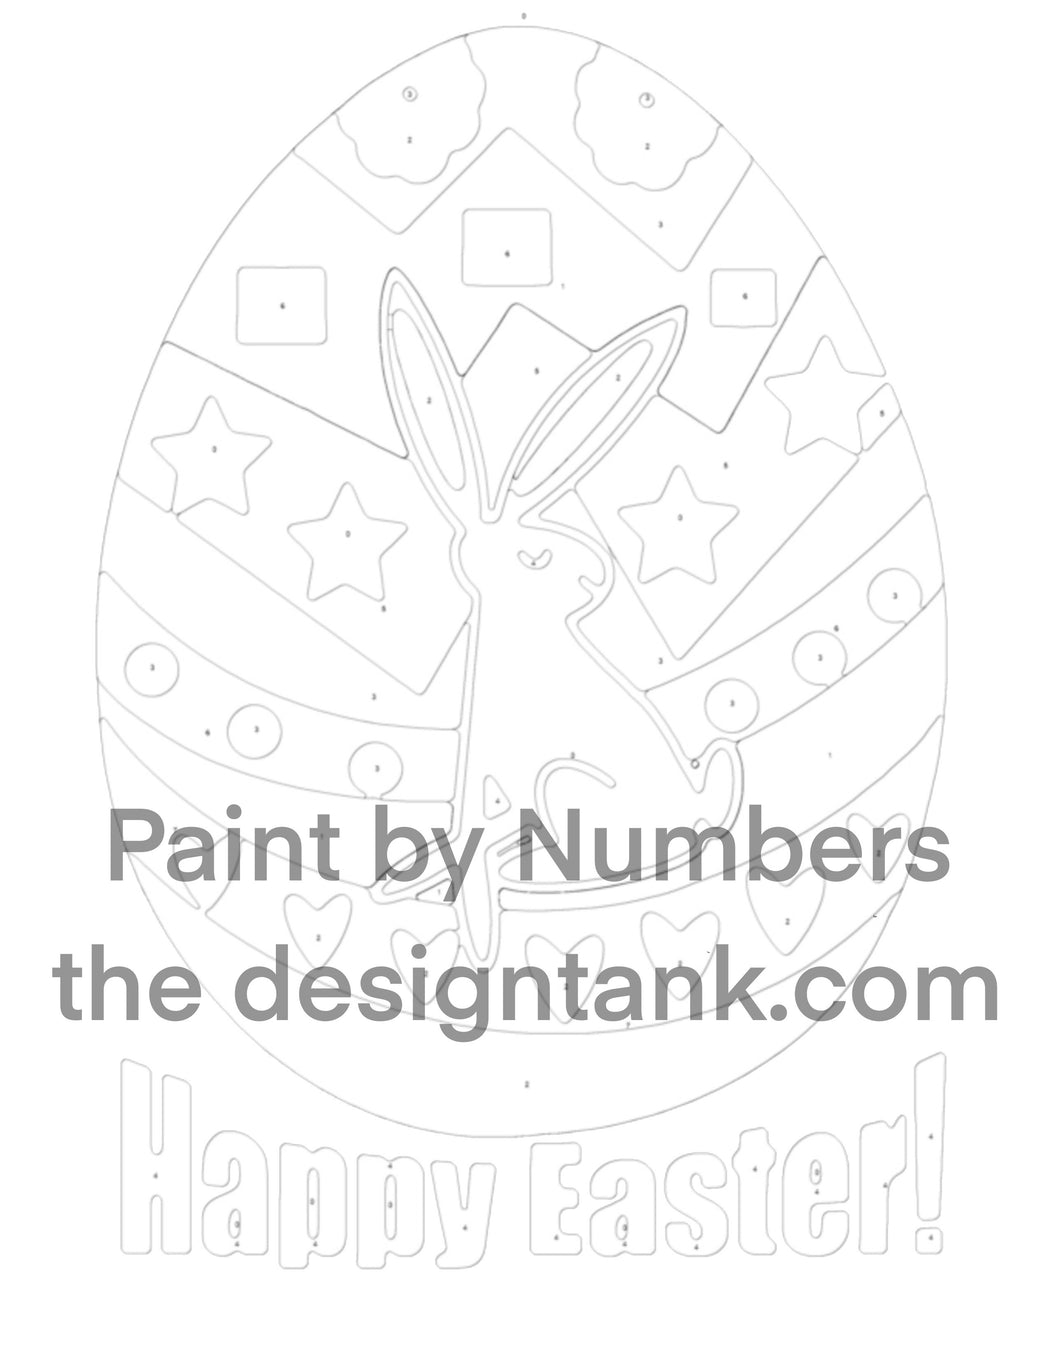 Downloadable Happy Easter Paint by Numbers - www.thedesigntank.com